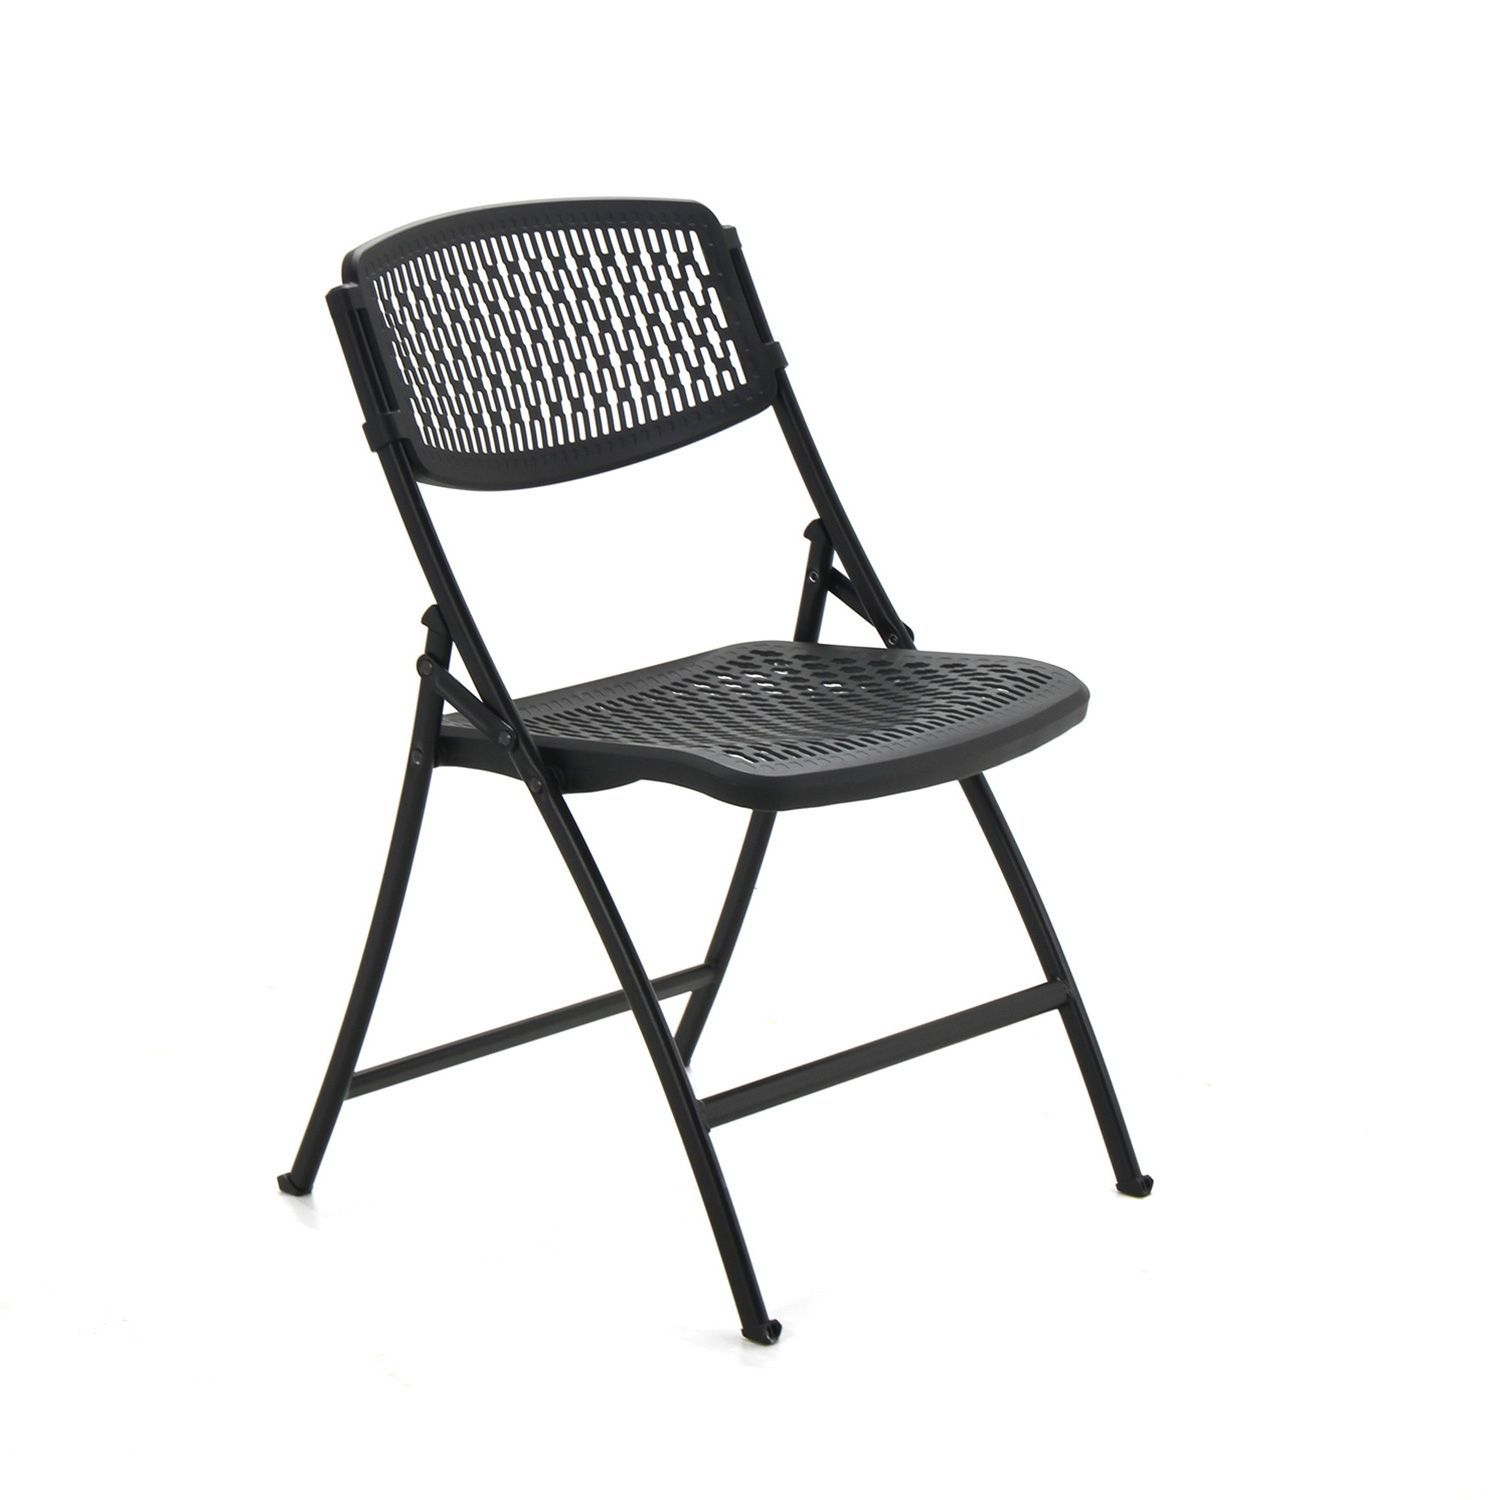 Sams Club Chairs Hanging Chair Outdoor Mity Lite Flex One Folding Black Sam S Definitely The Ones We Want Look Nice But Comfortable To Boot Love Them